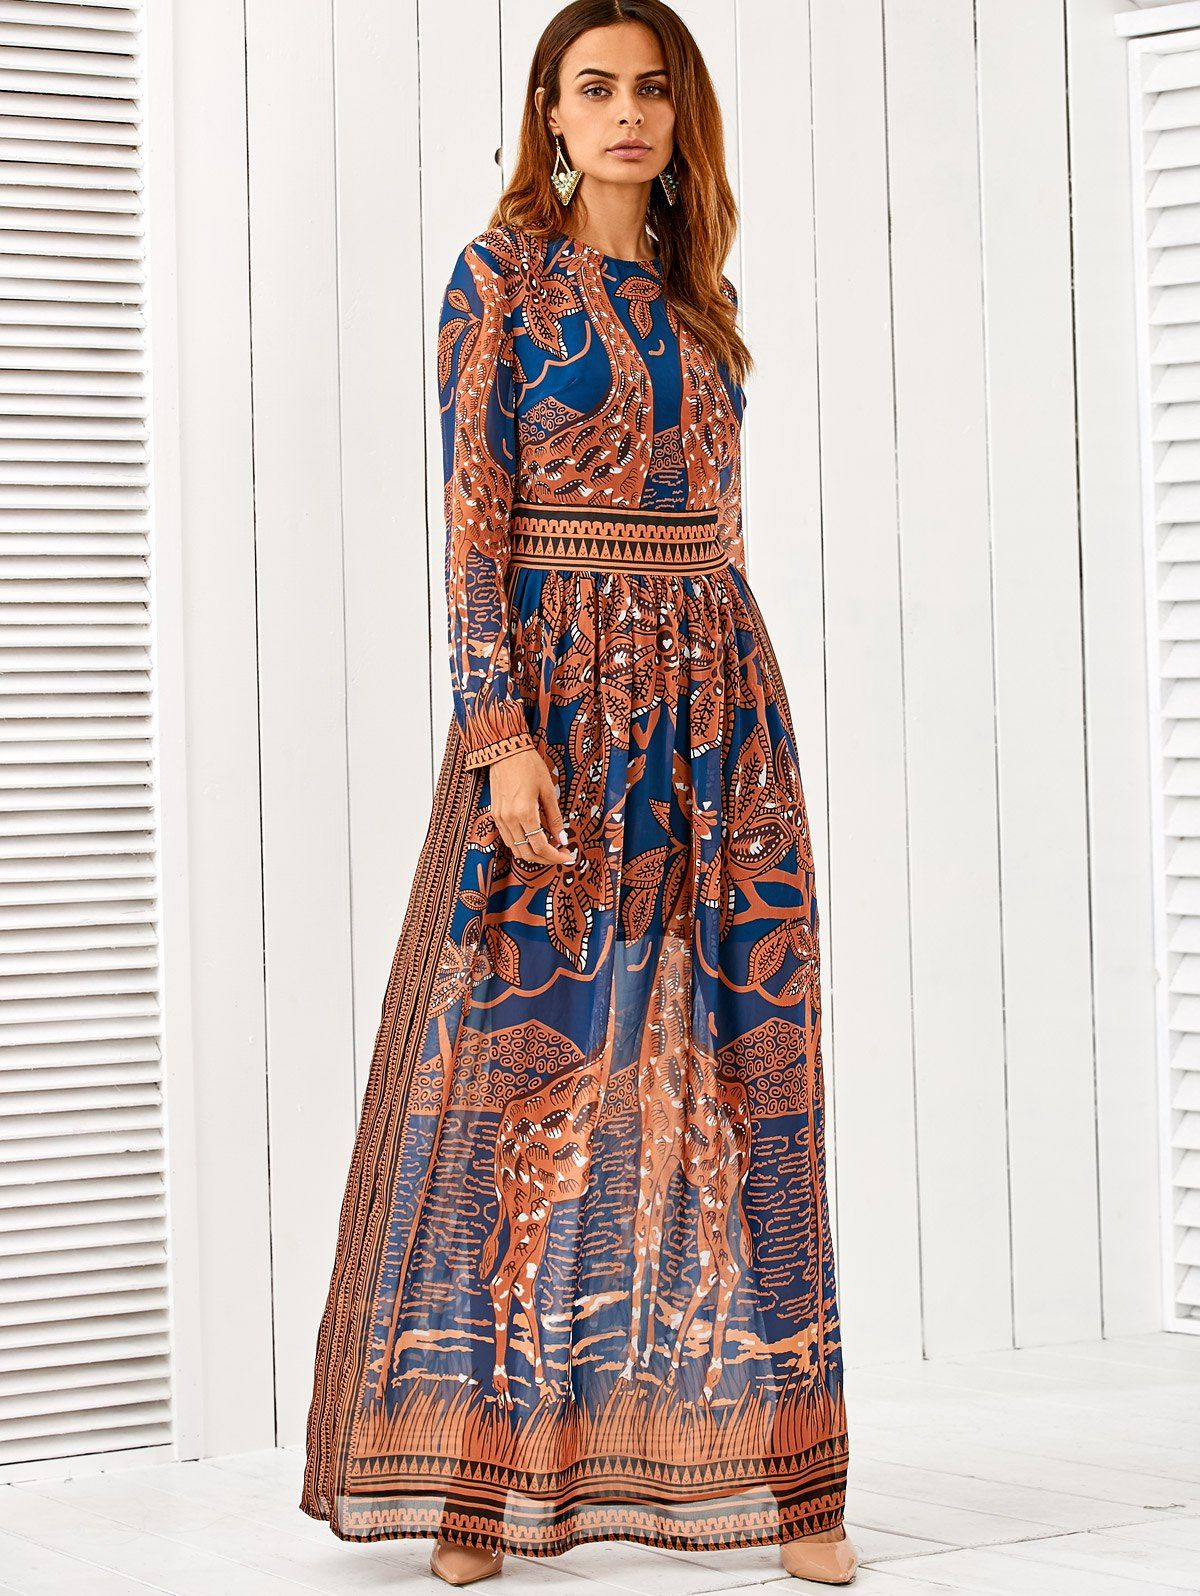 Giraffes Print Vintage Maxi Dress BLUE: Maxi Dresses | ZAFUL ...